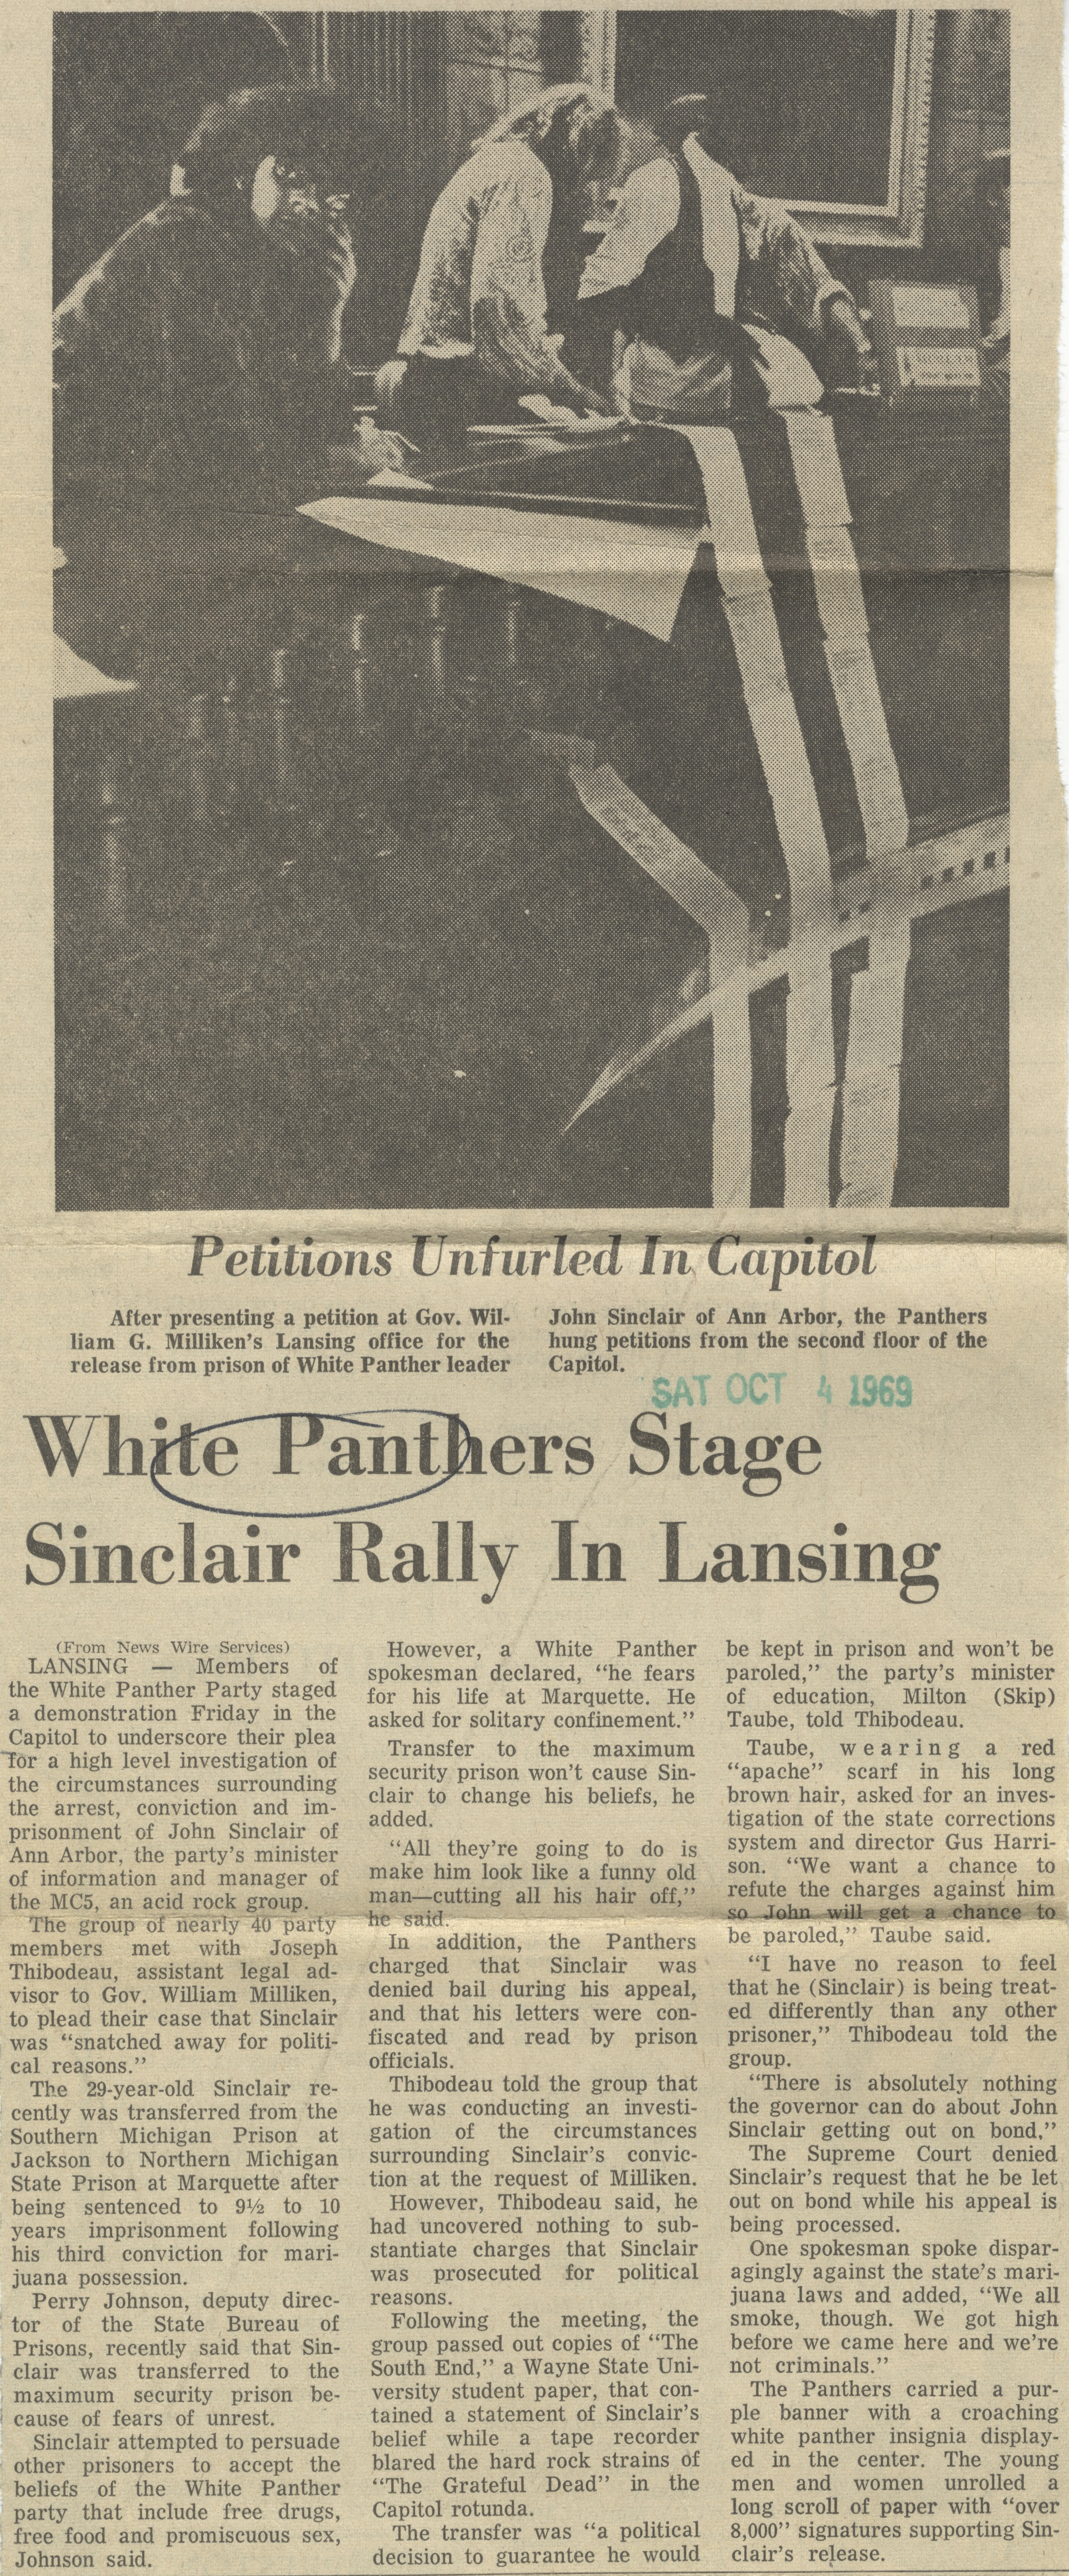 White Panthers Stage Sinclair Rally In Lansing image